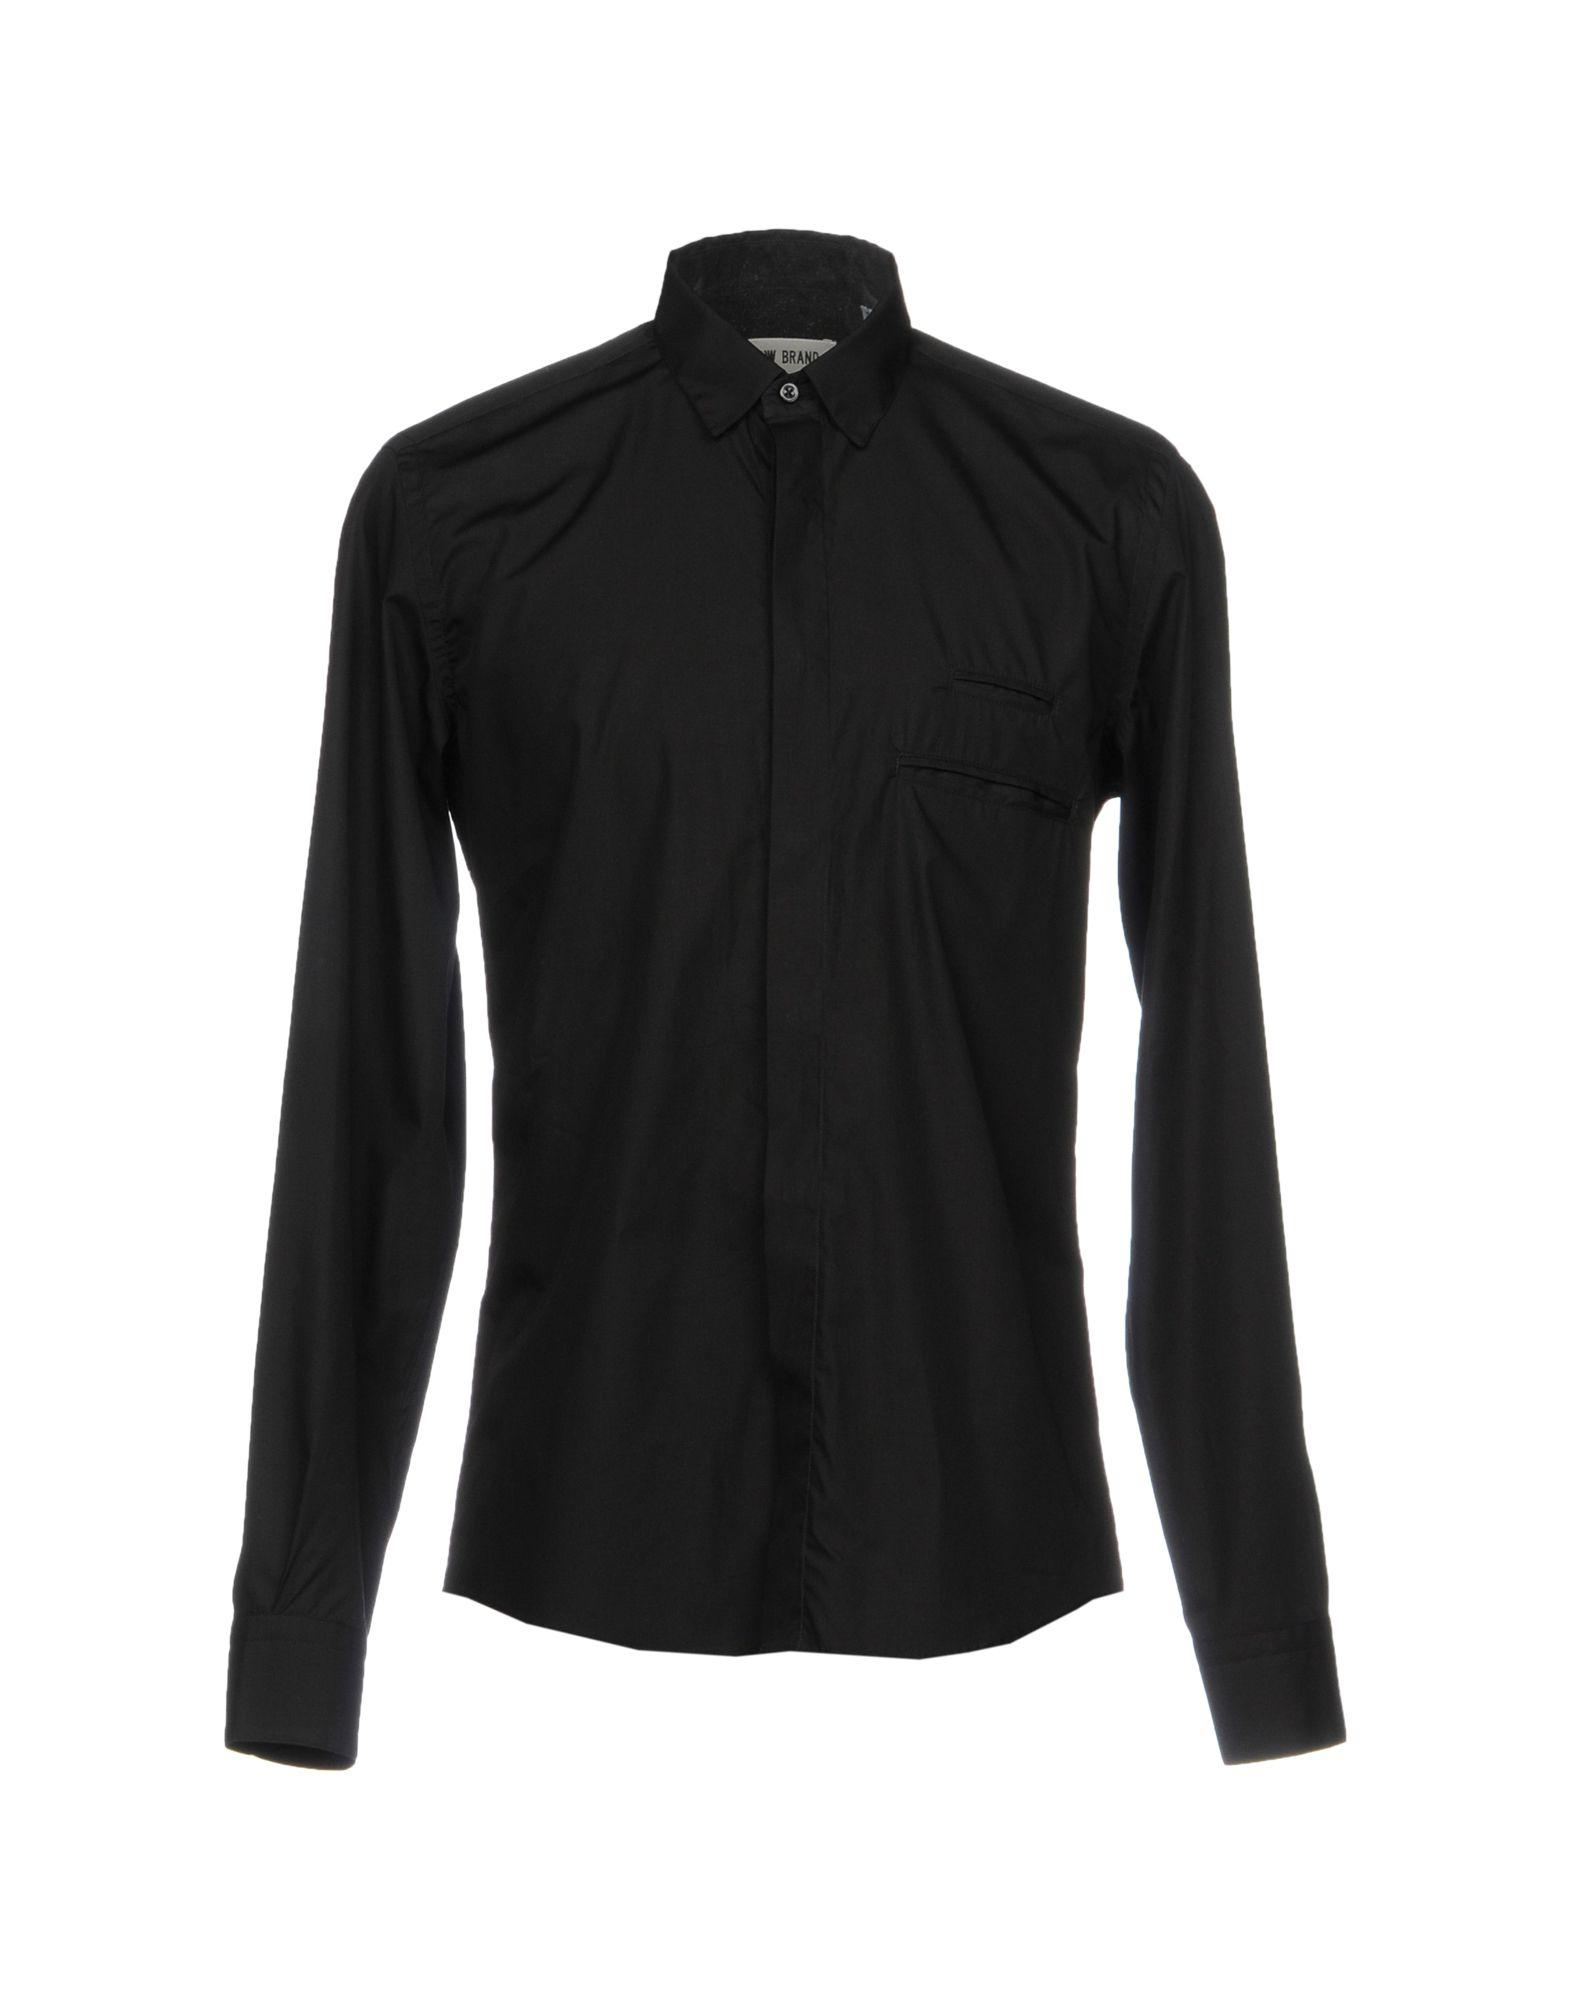 Low Brand Shirts In Black